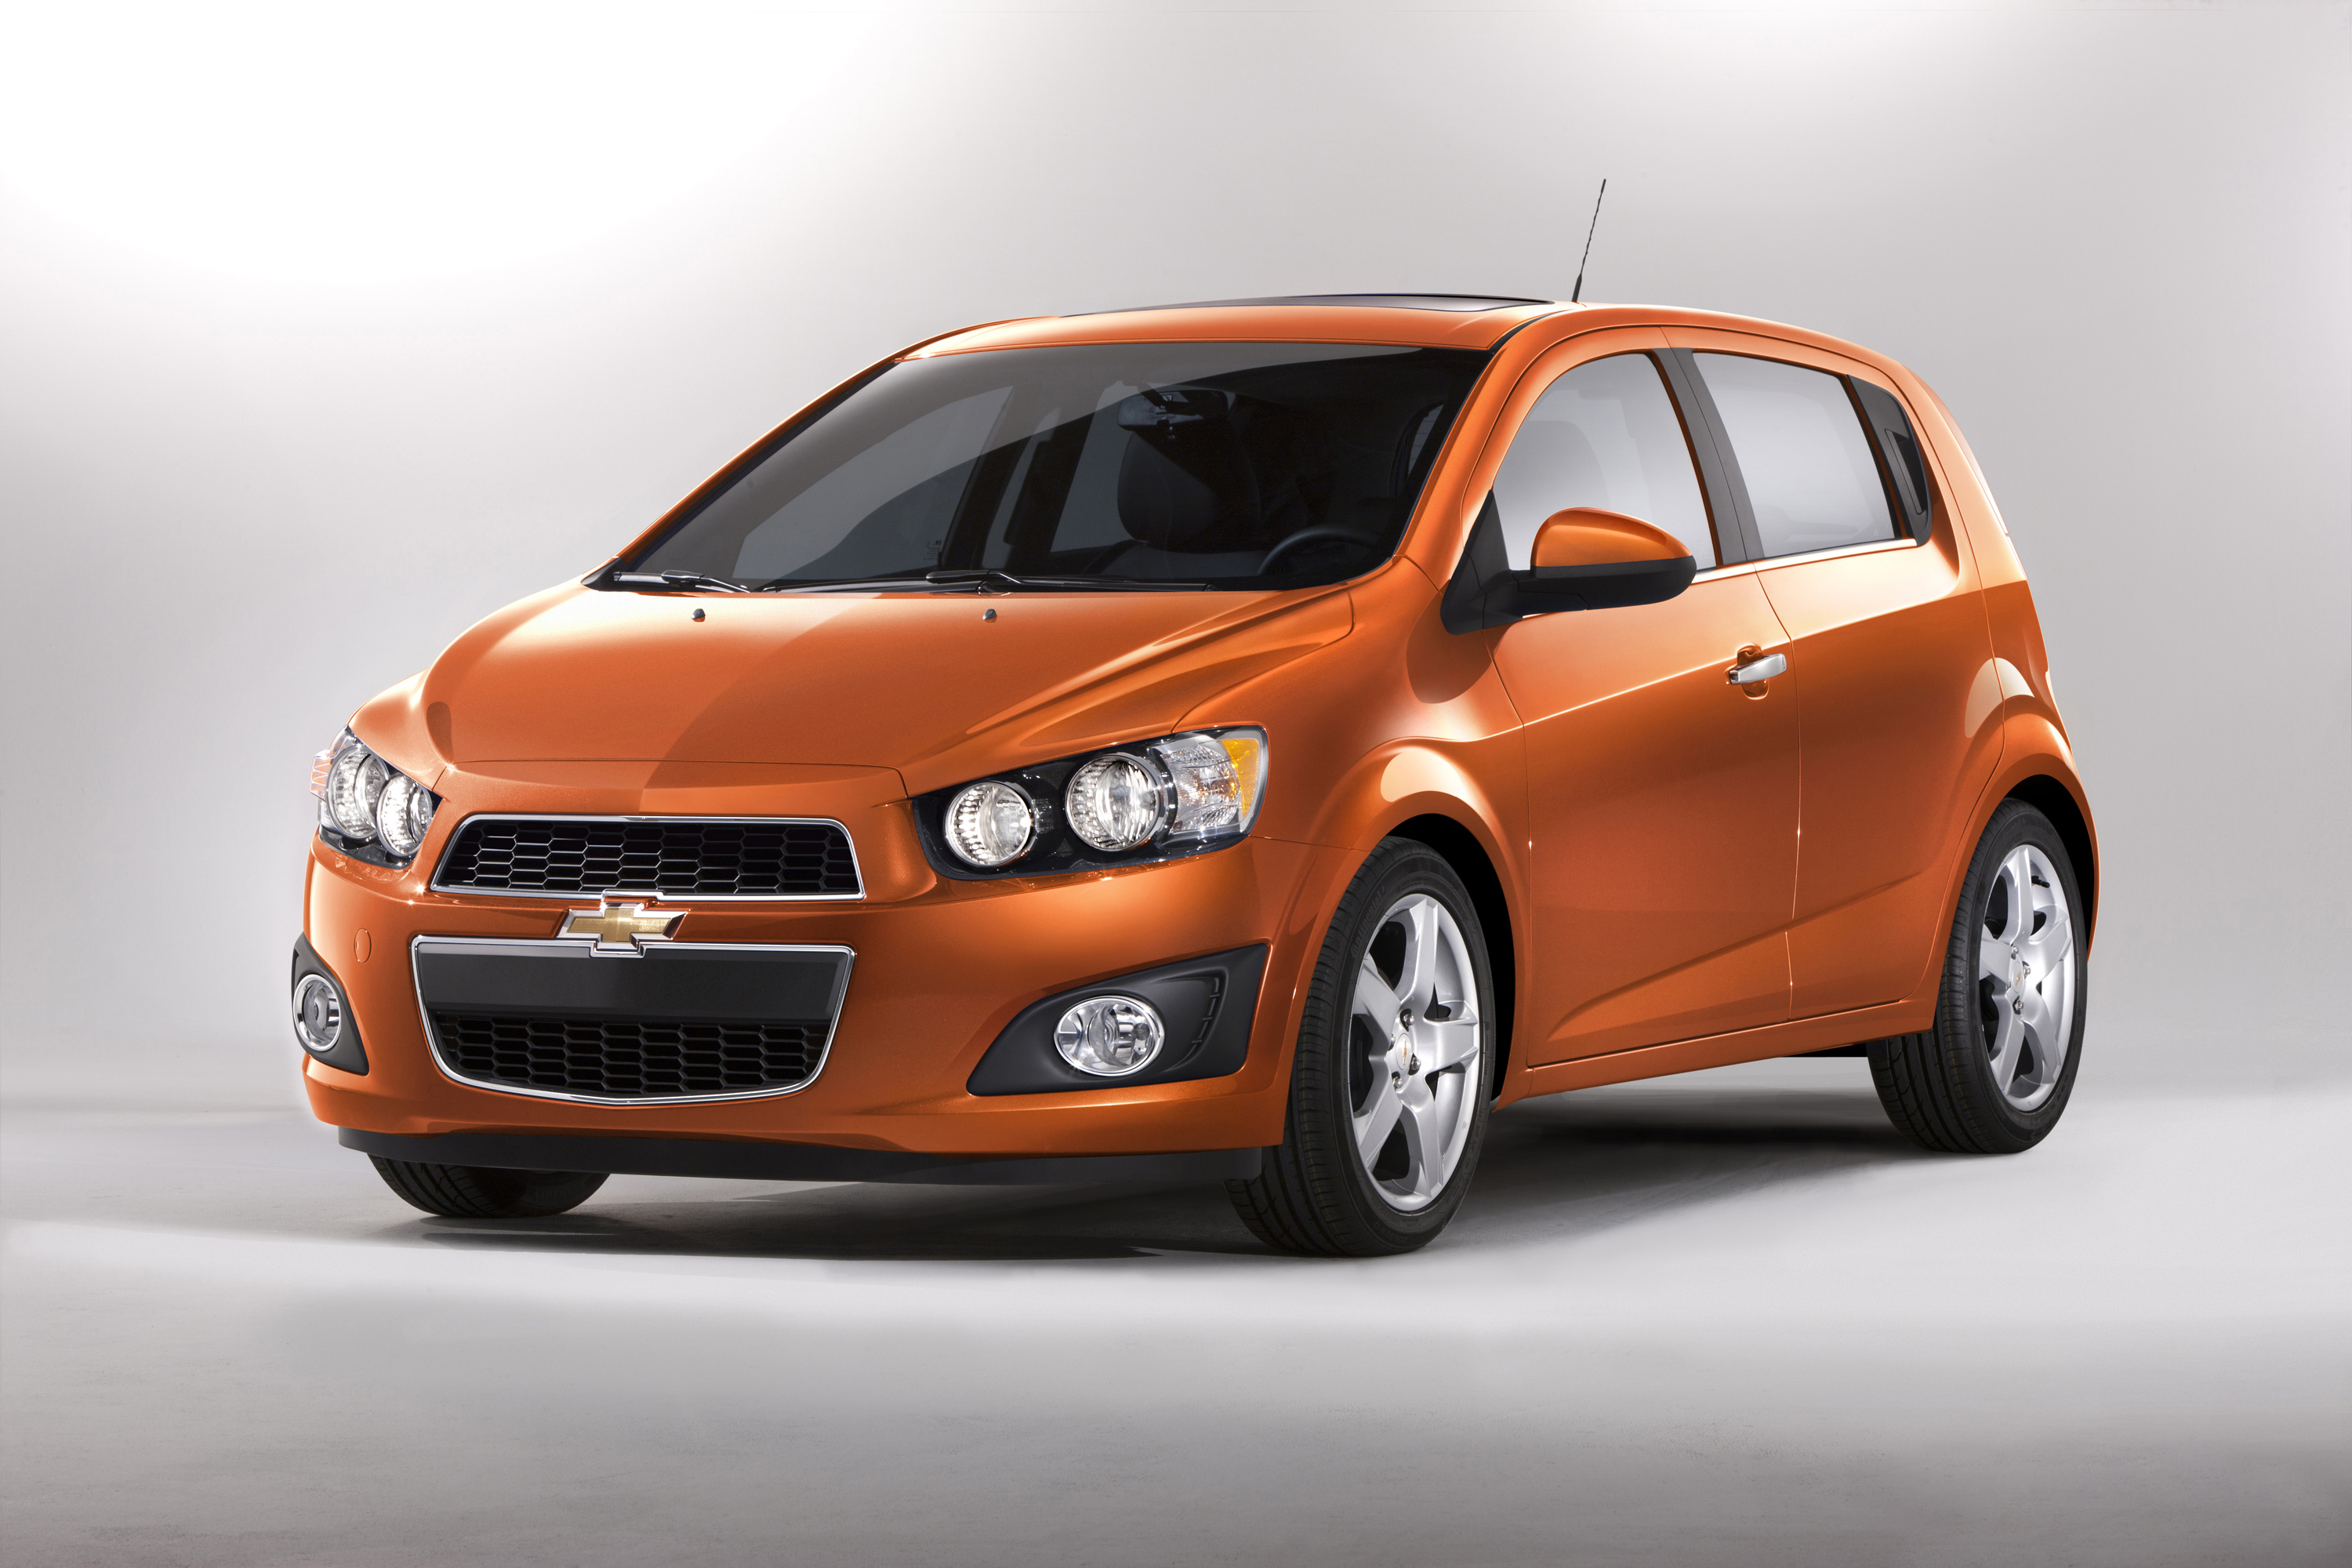 Chevrolet Sonic Owners Manual: Bluetooth Audio